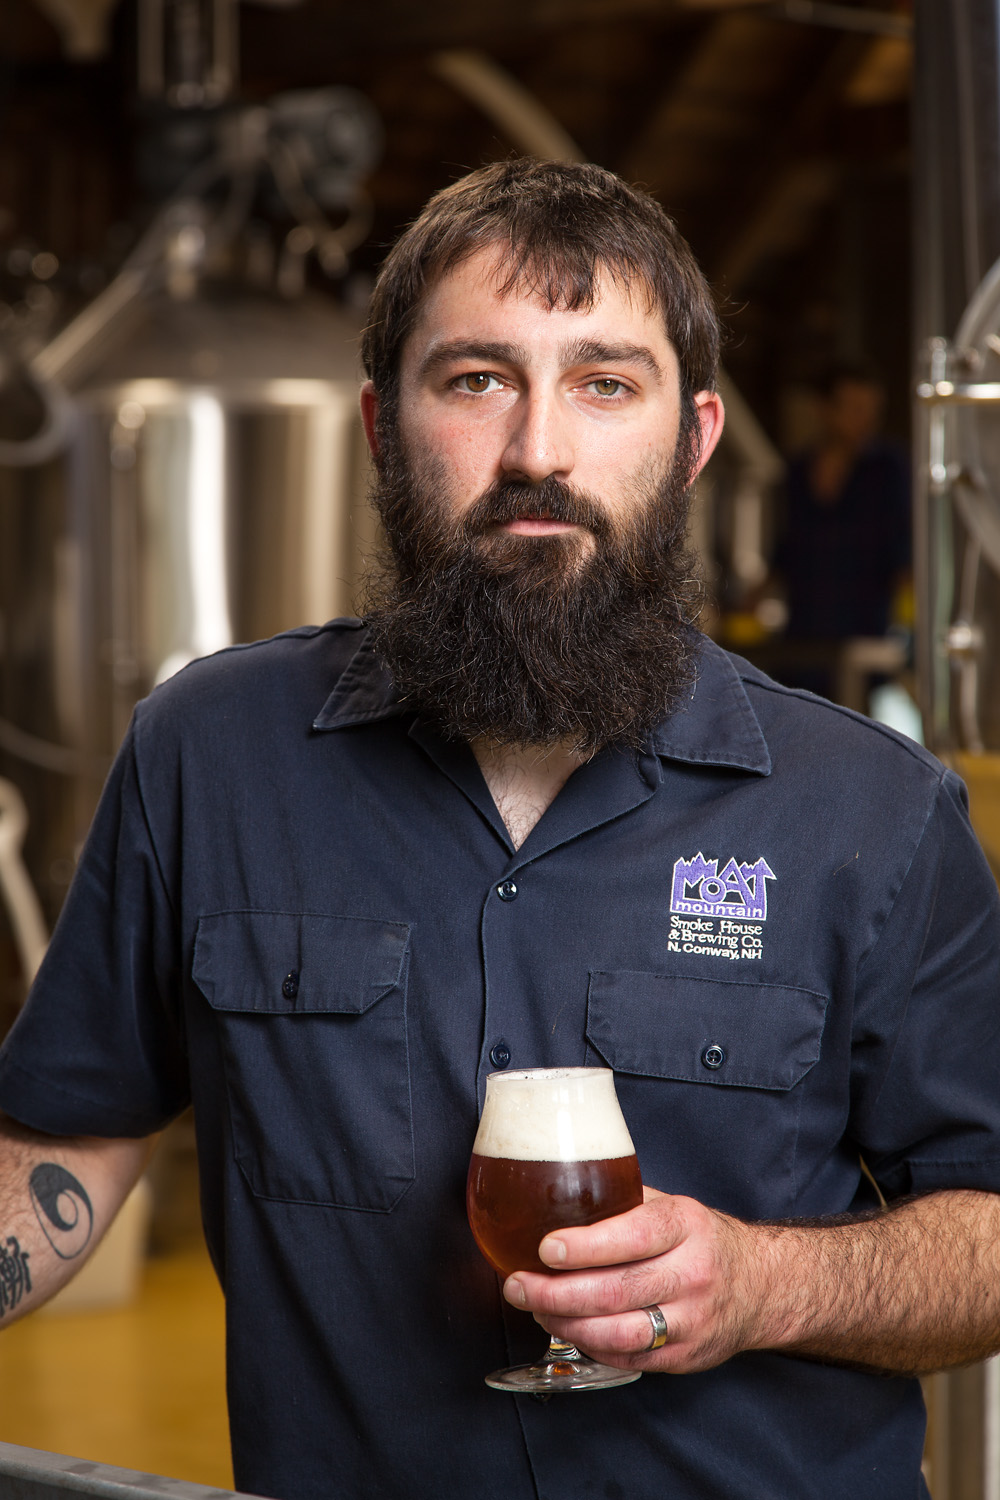 Scottie Simoneau, Head Brewer Moat Mountain Smokehouse and Brewing Co. North Conway, New Hampshire Established in 2000